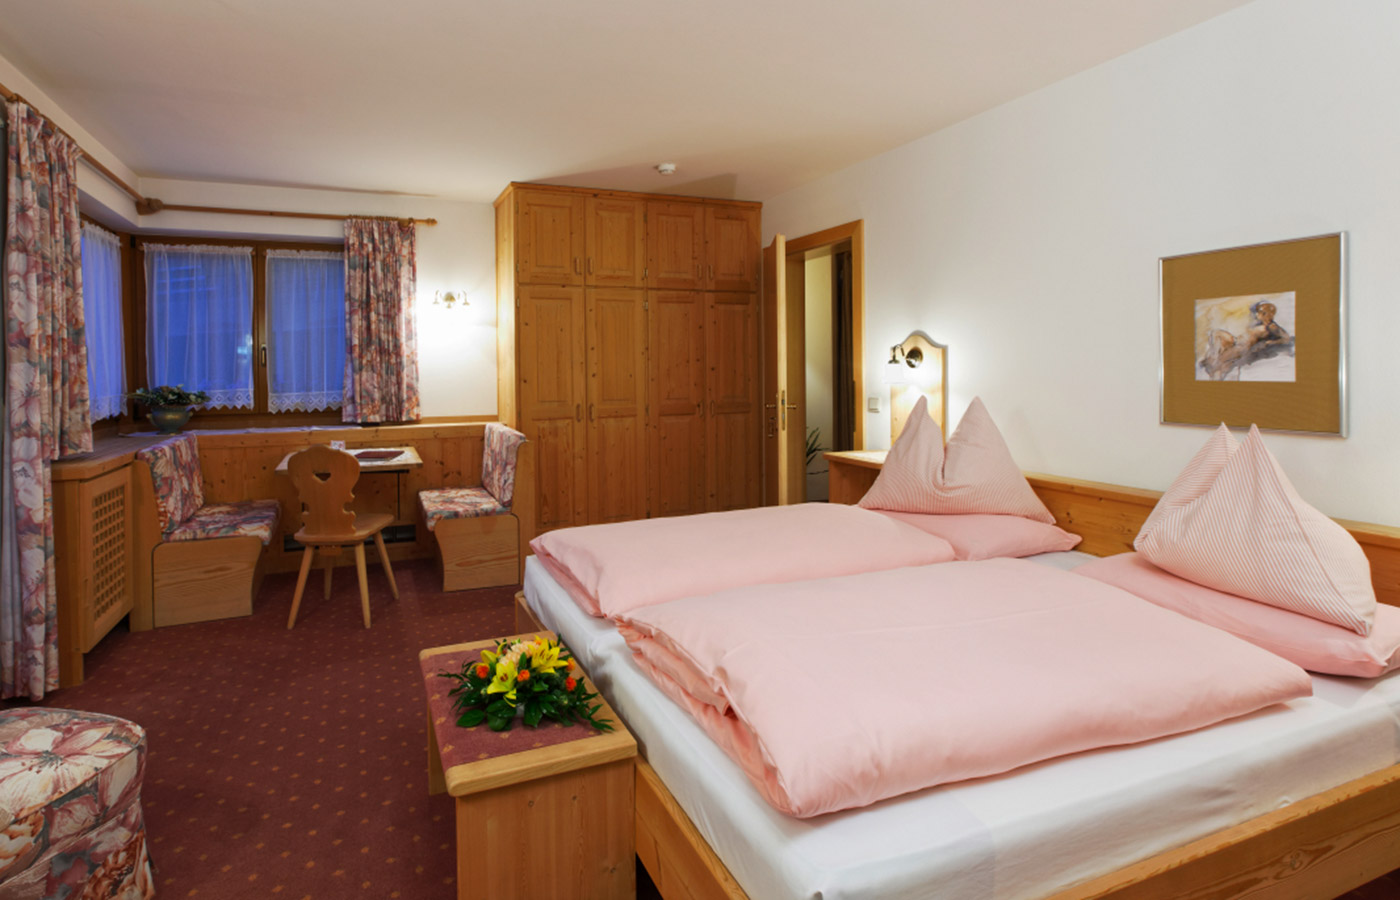 Double room at Garnì Raetia with corner seat